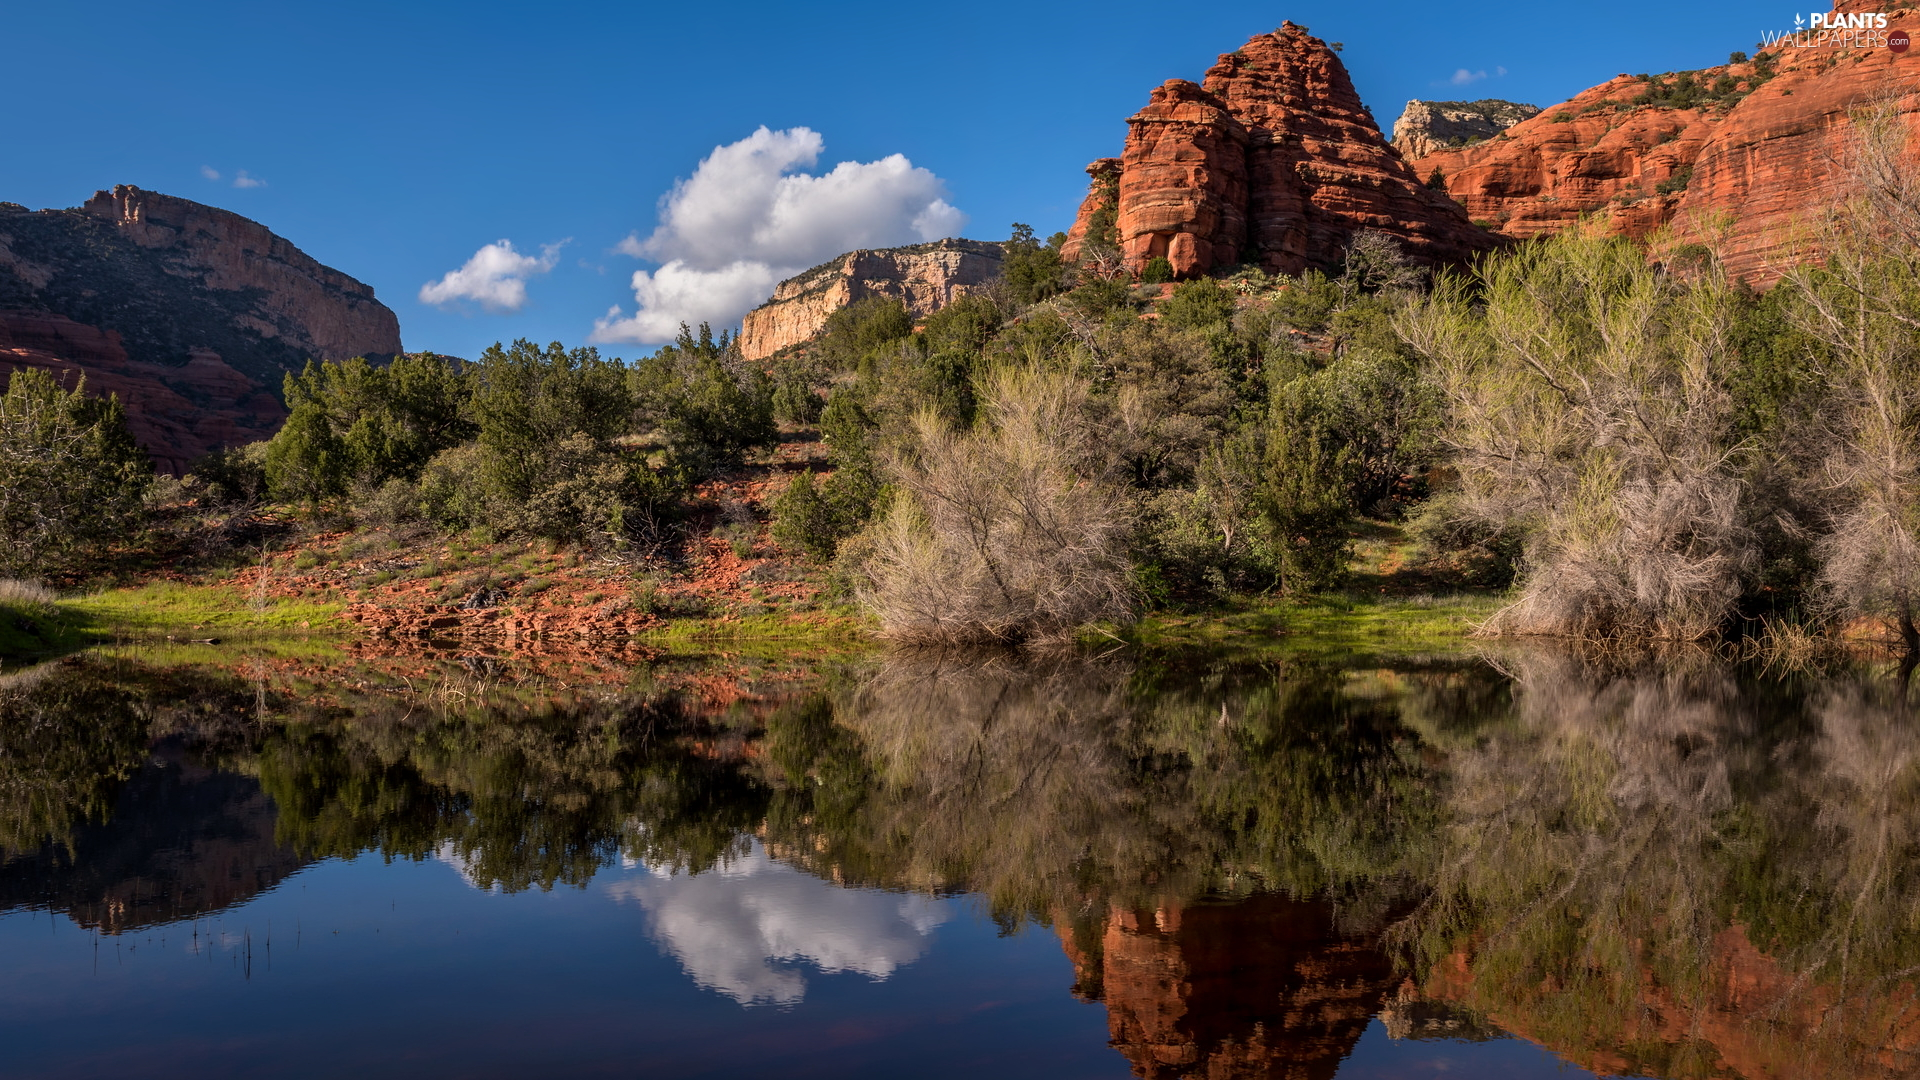 rocks, Red, Bush, trees, Arizona, The United States, lake, Sedona, viewes